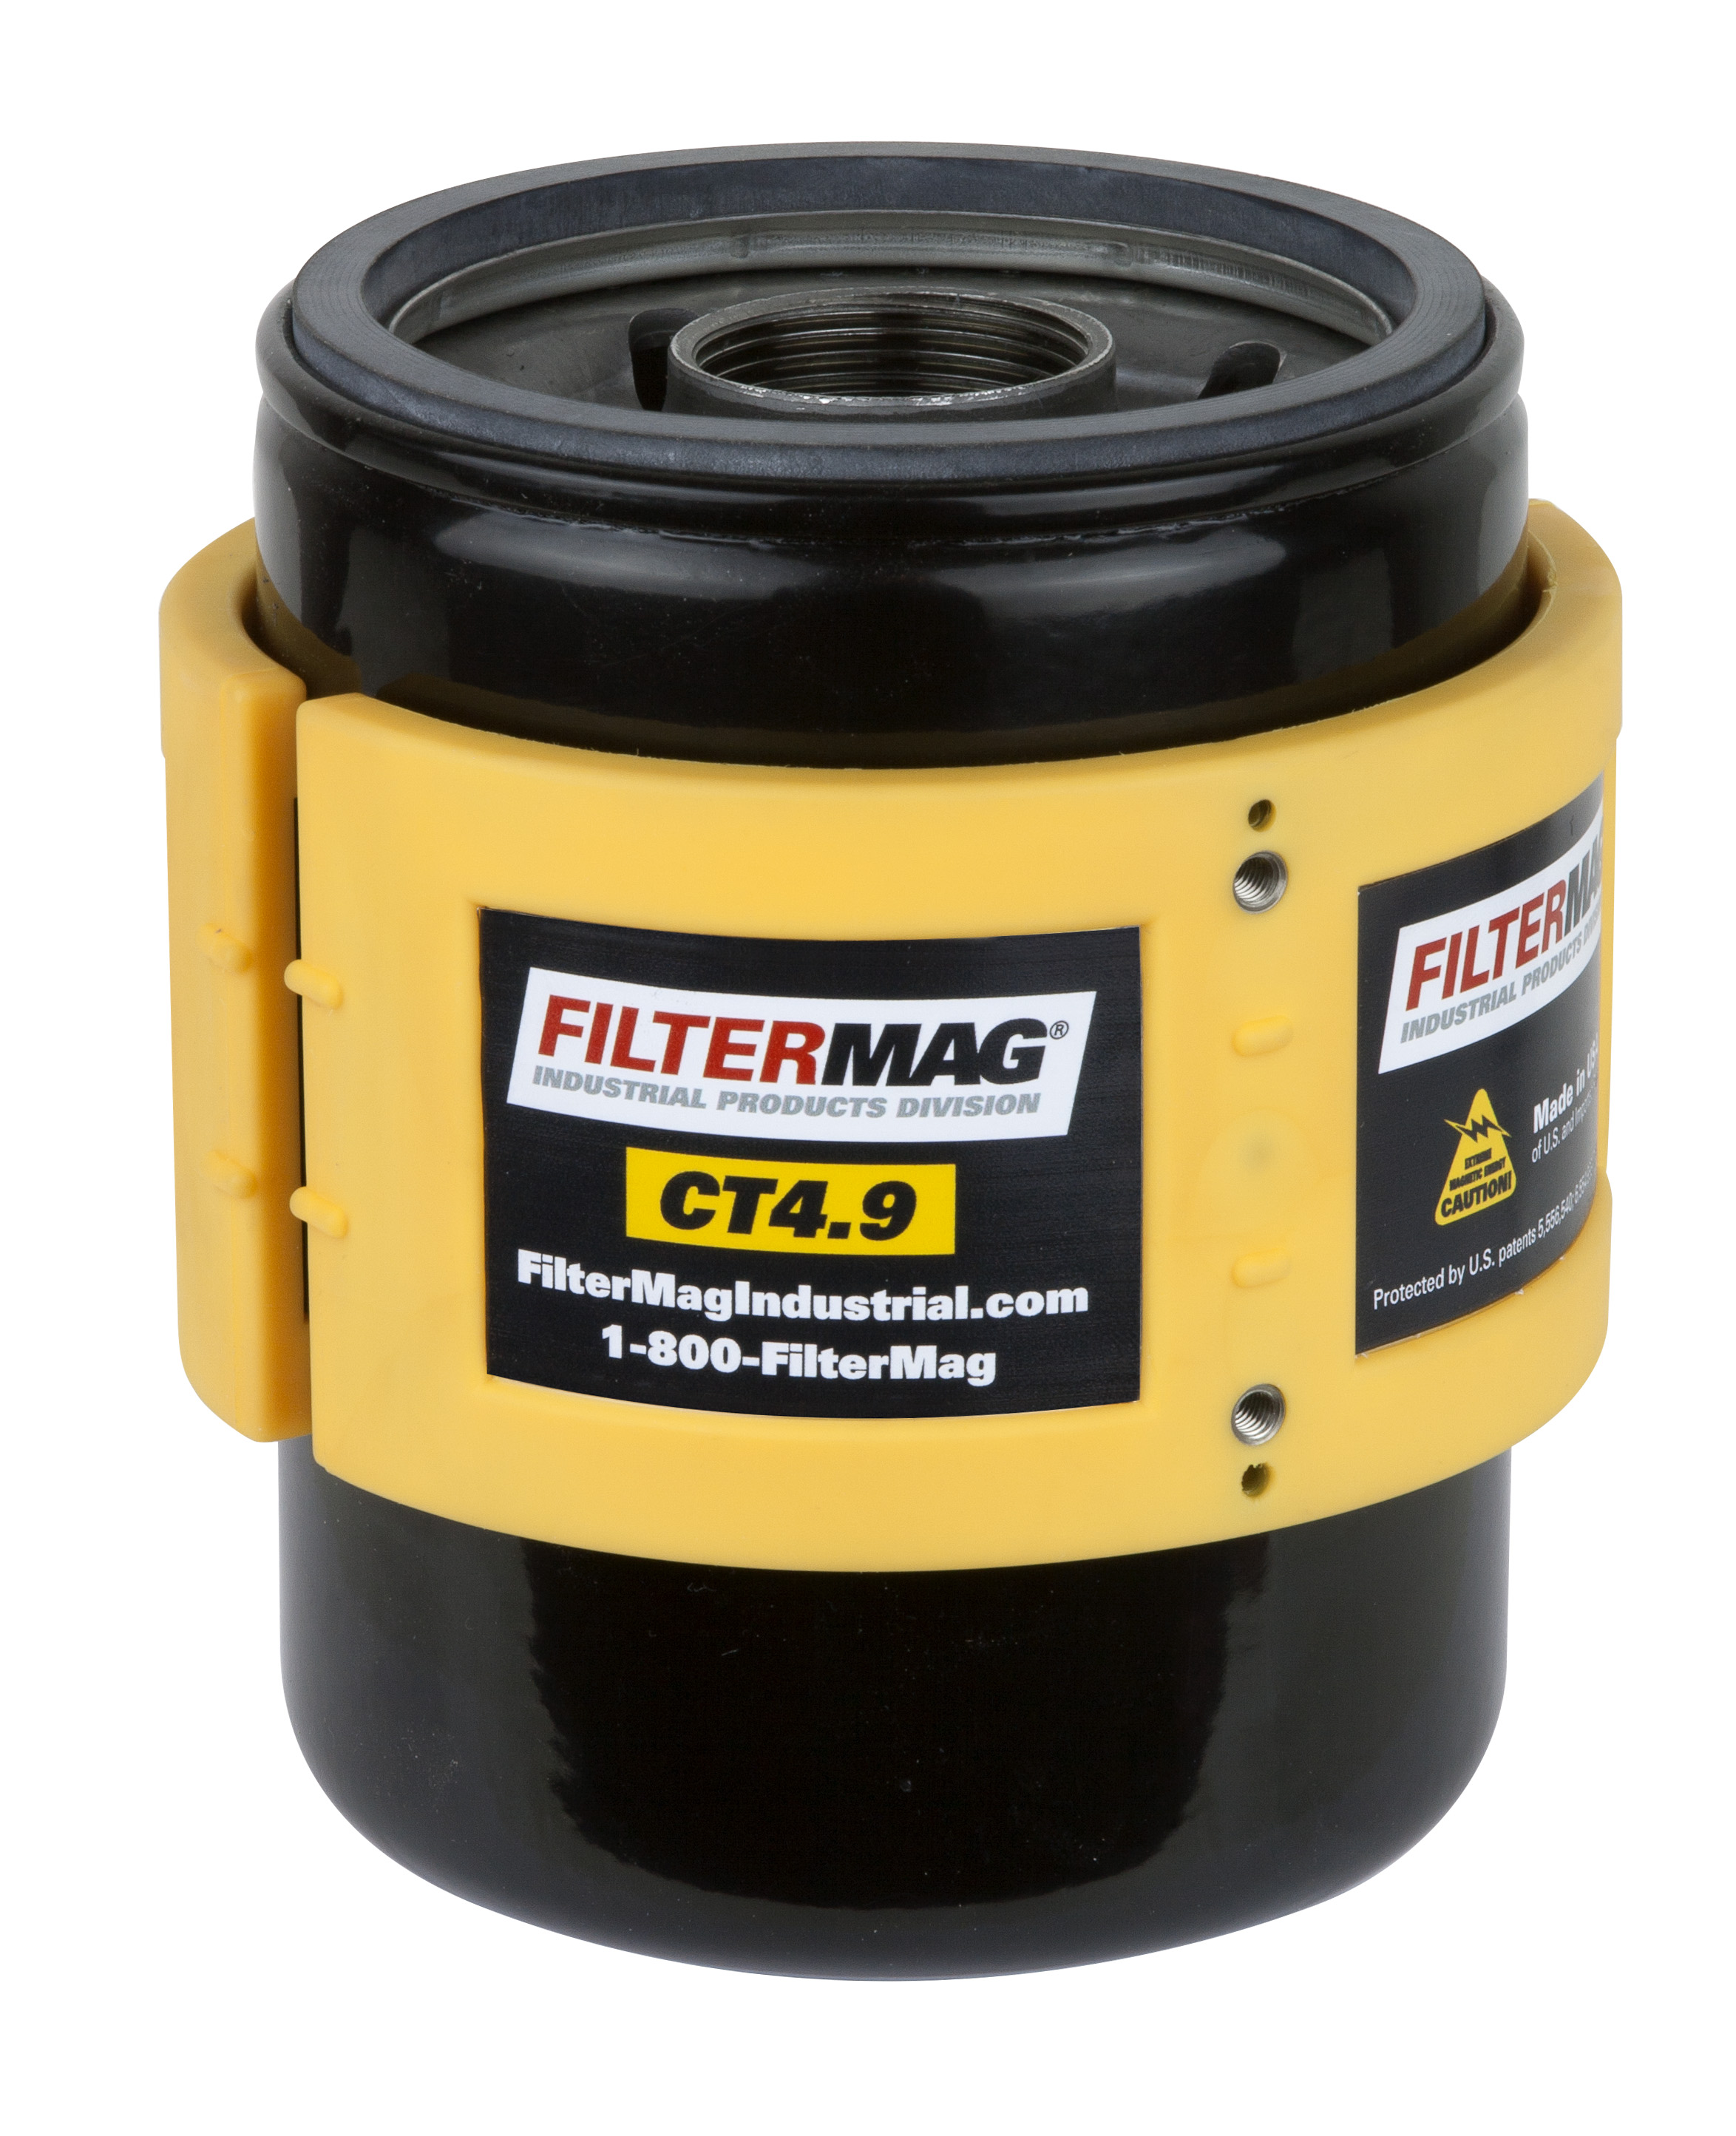 FilterMag's Magnetic Filtration Product